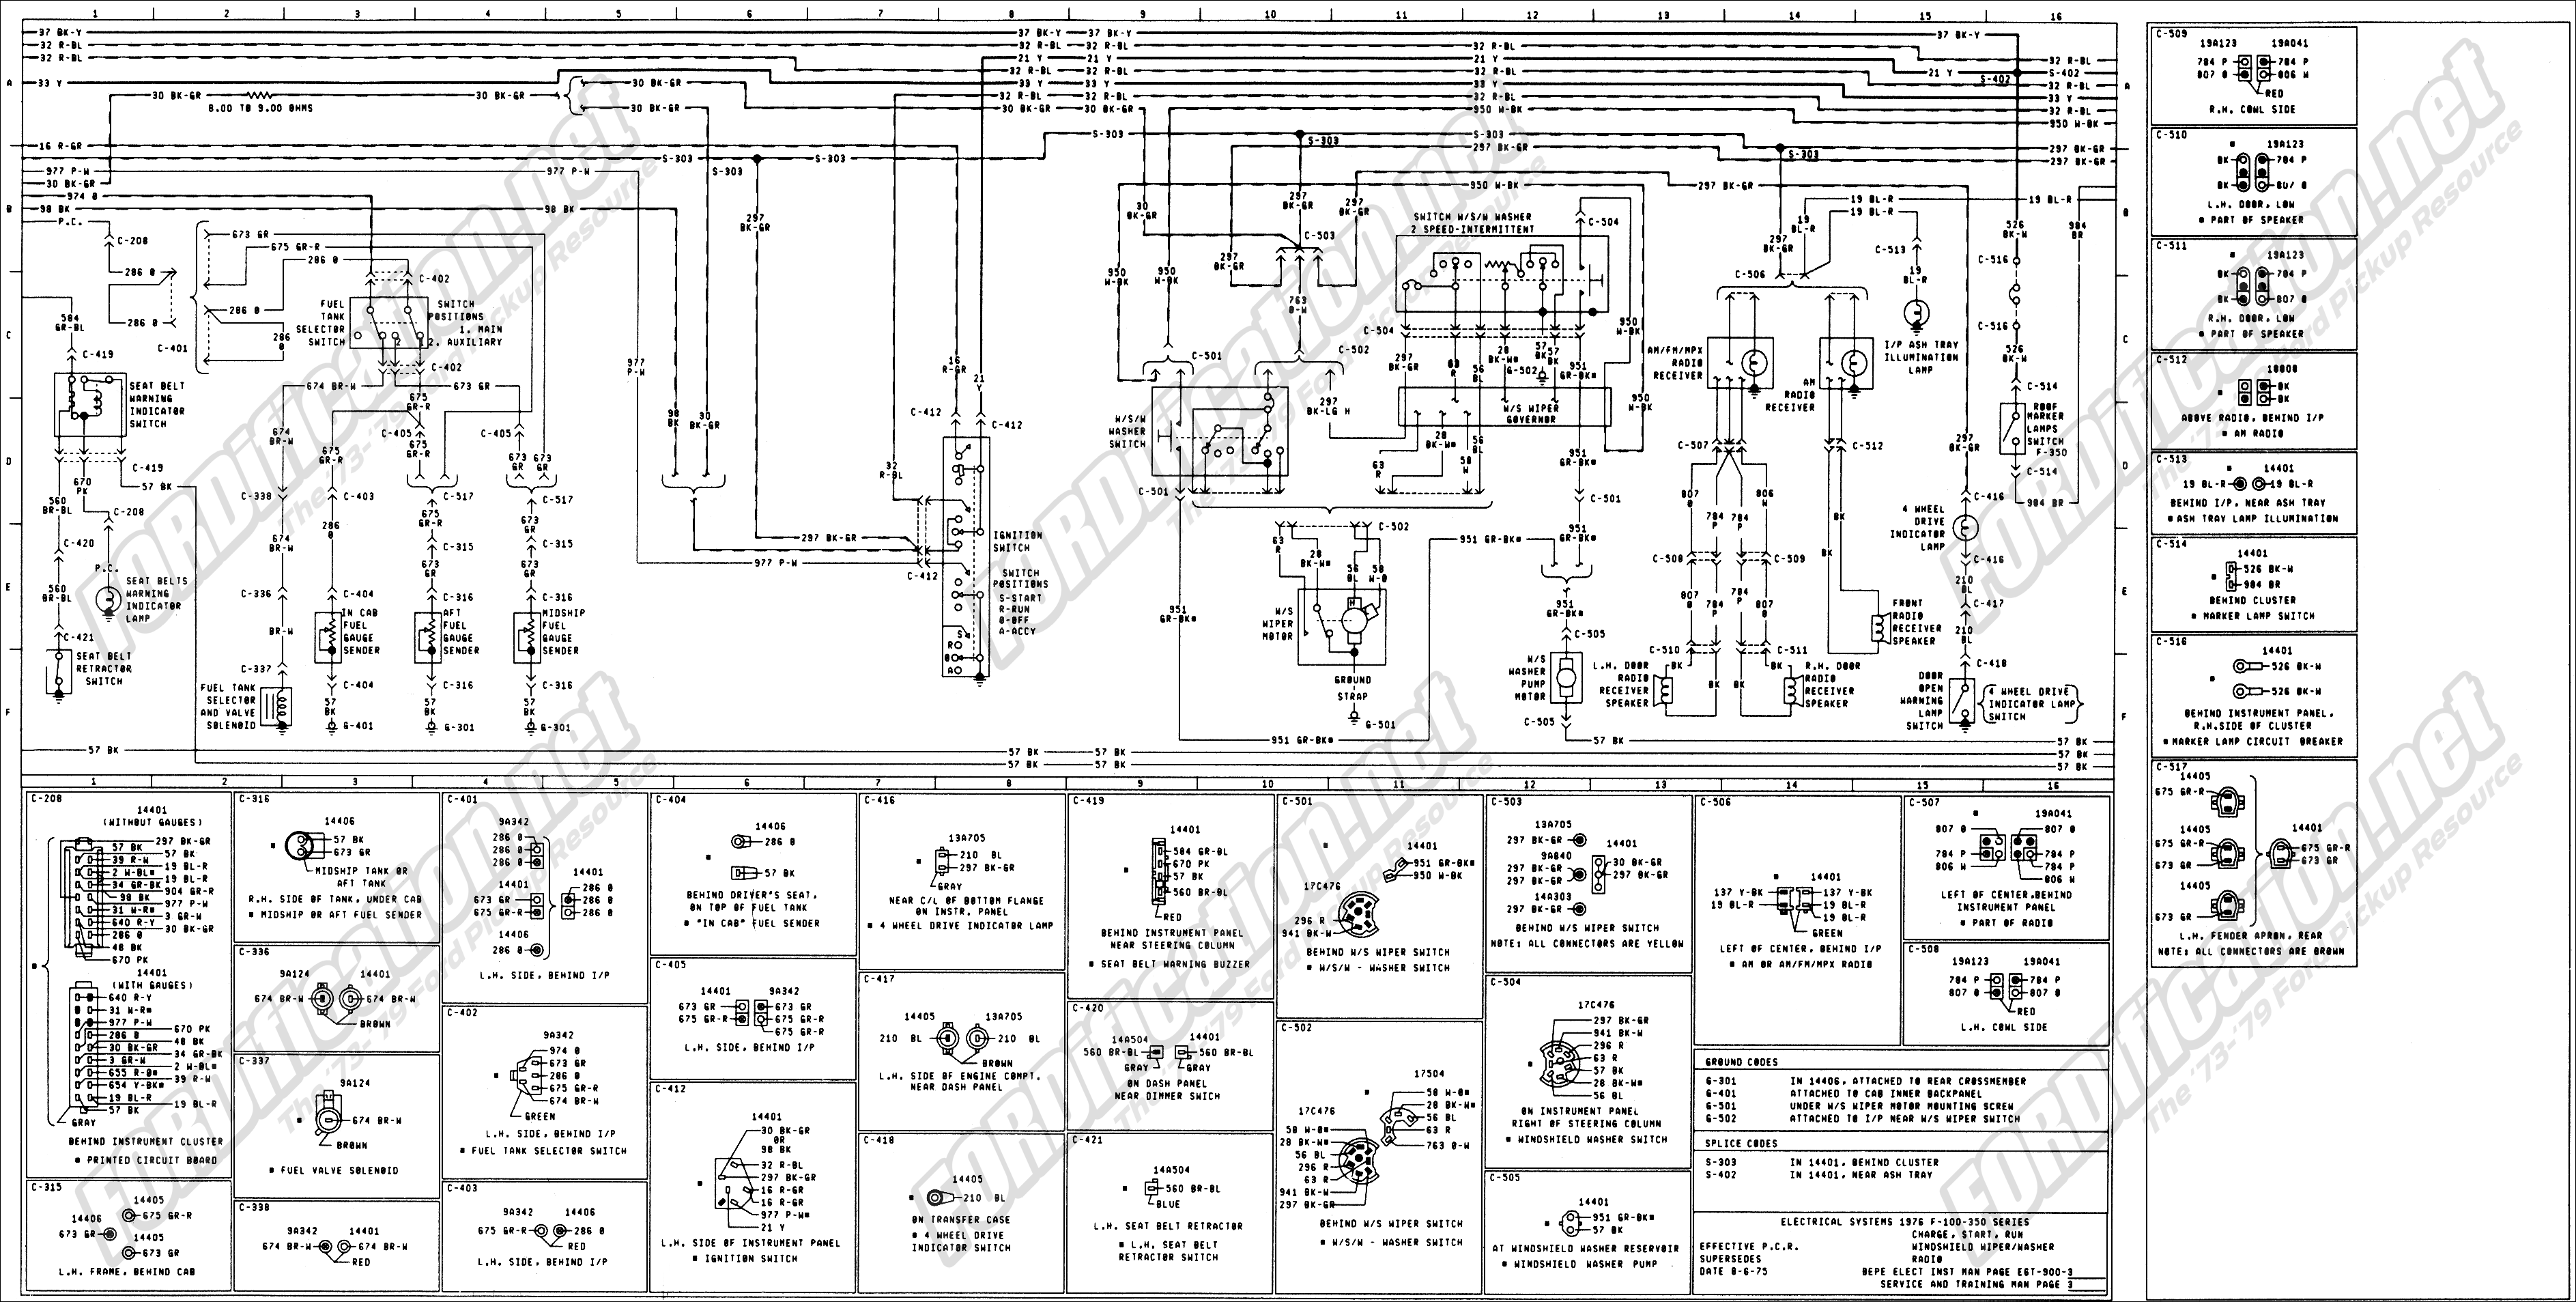 wiring_76master_3of9 1973 1979 ford truck wiring diagrams & schematics fordification net 2003 ford lightning wiring diagram at edmiracle.co